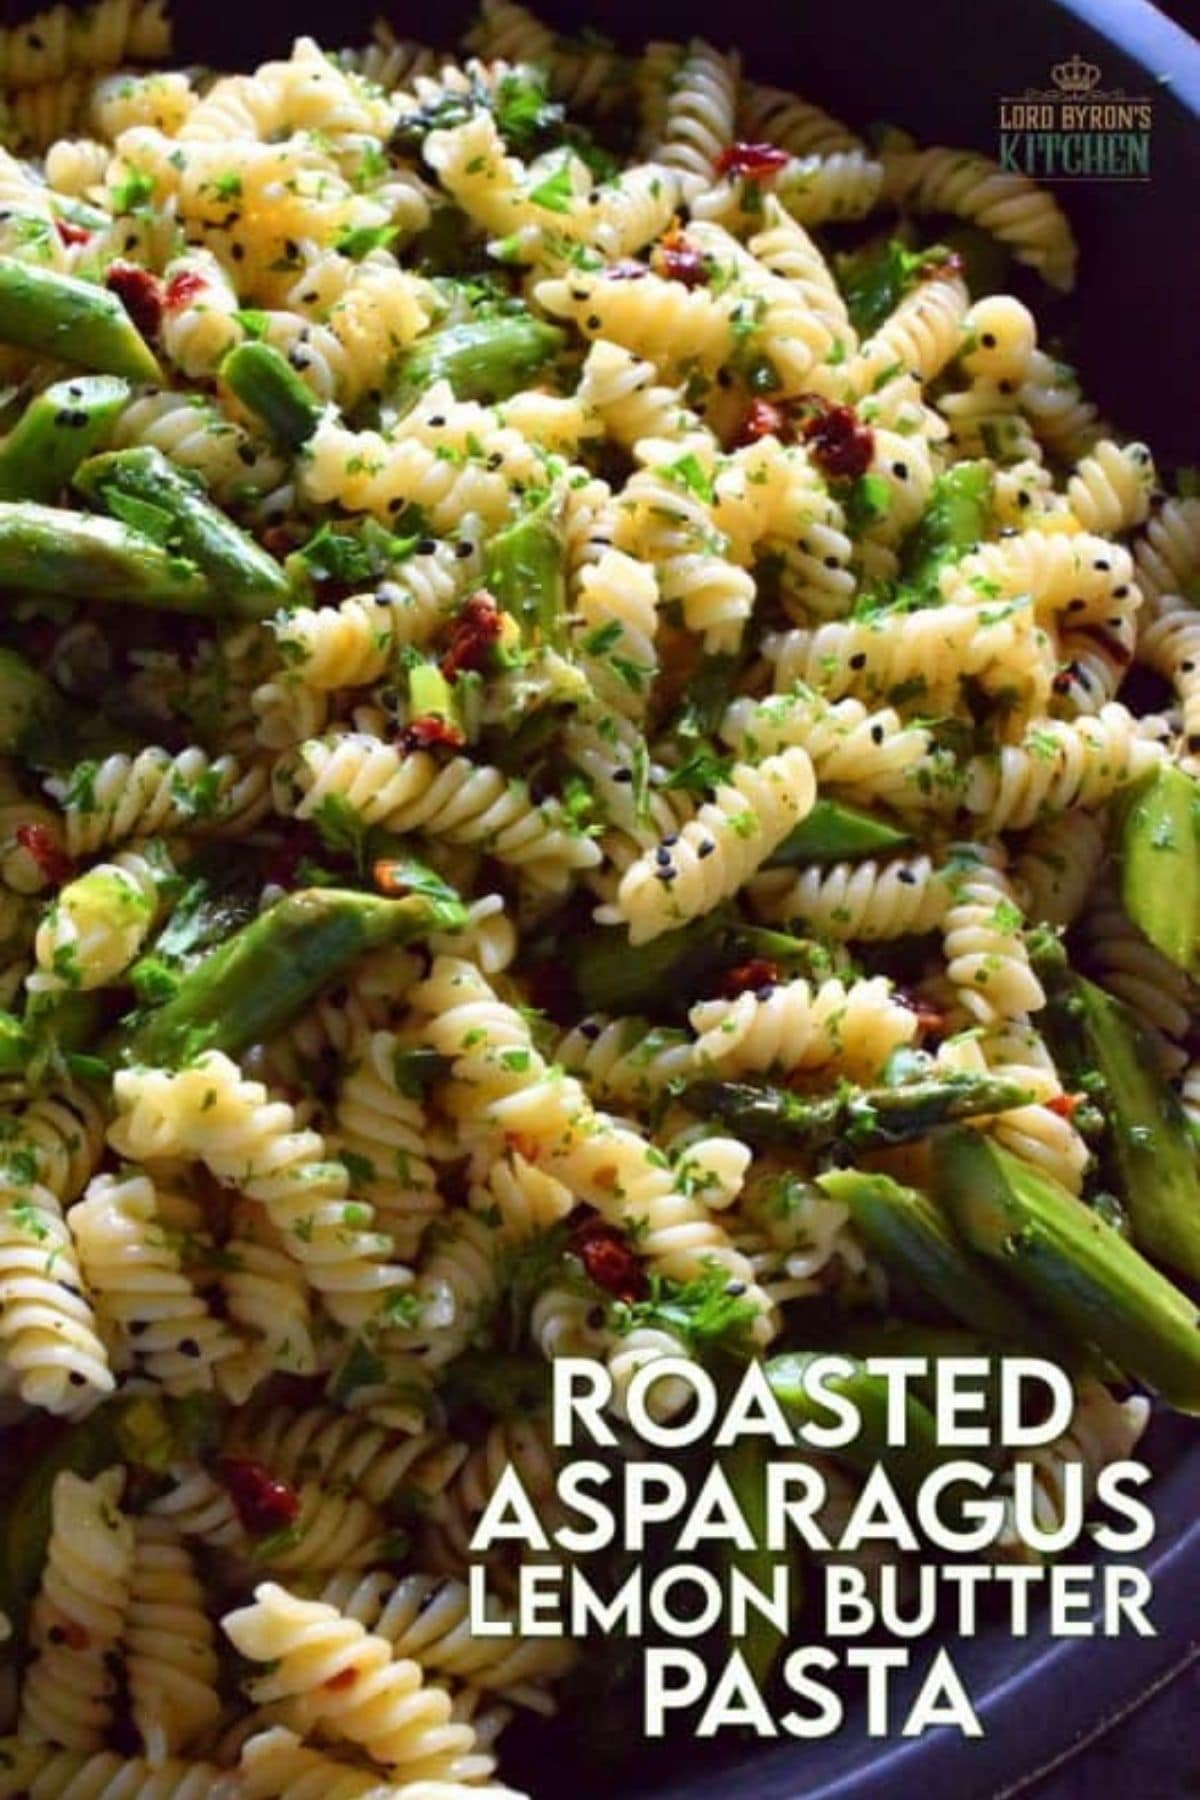 Asparagus with spiral pasta in bowl